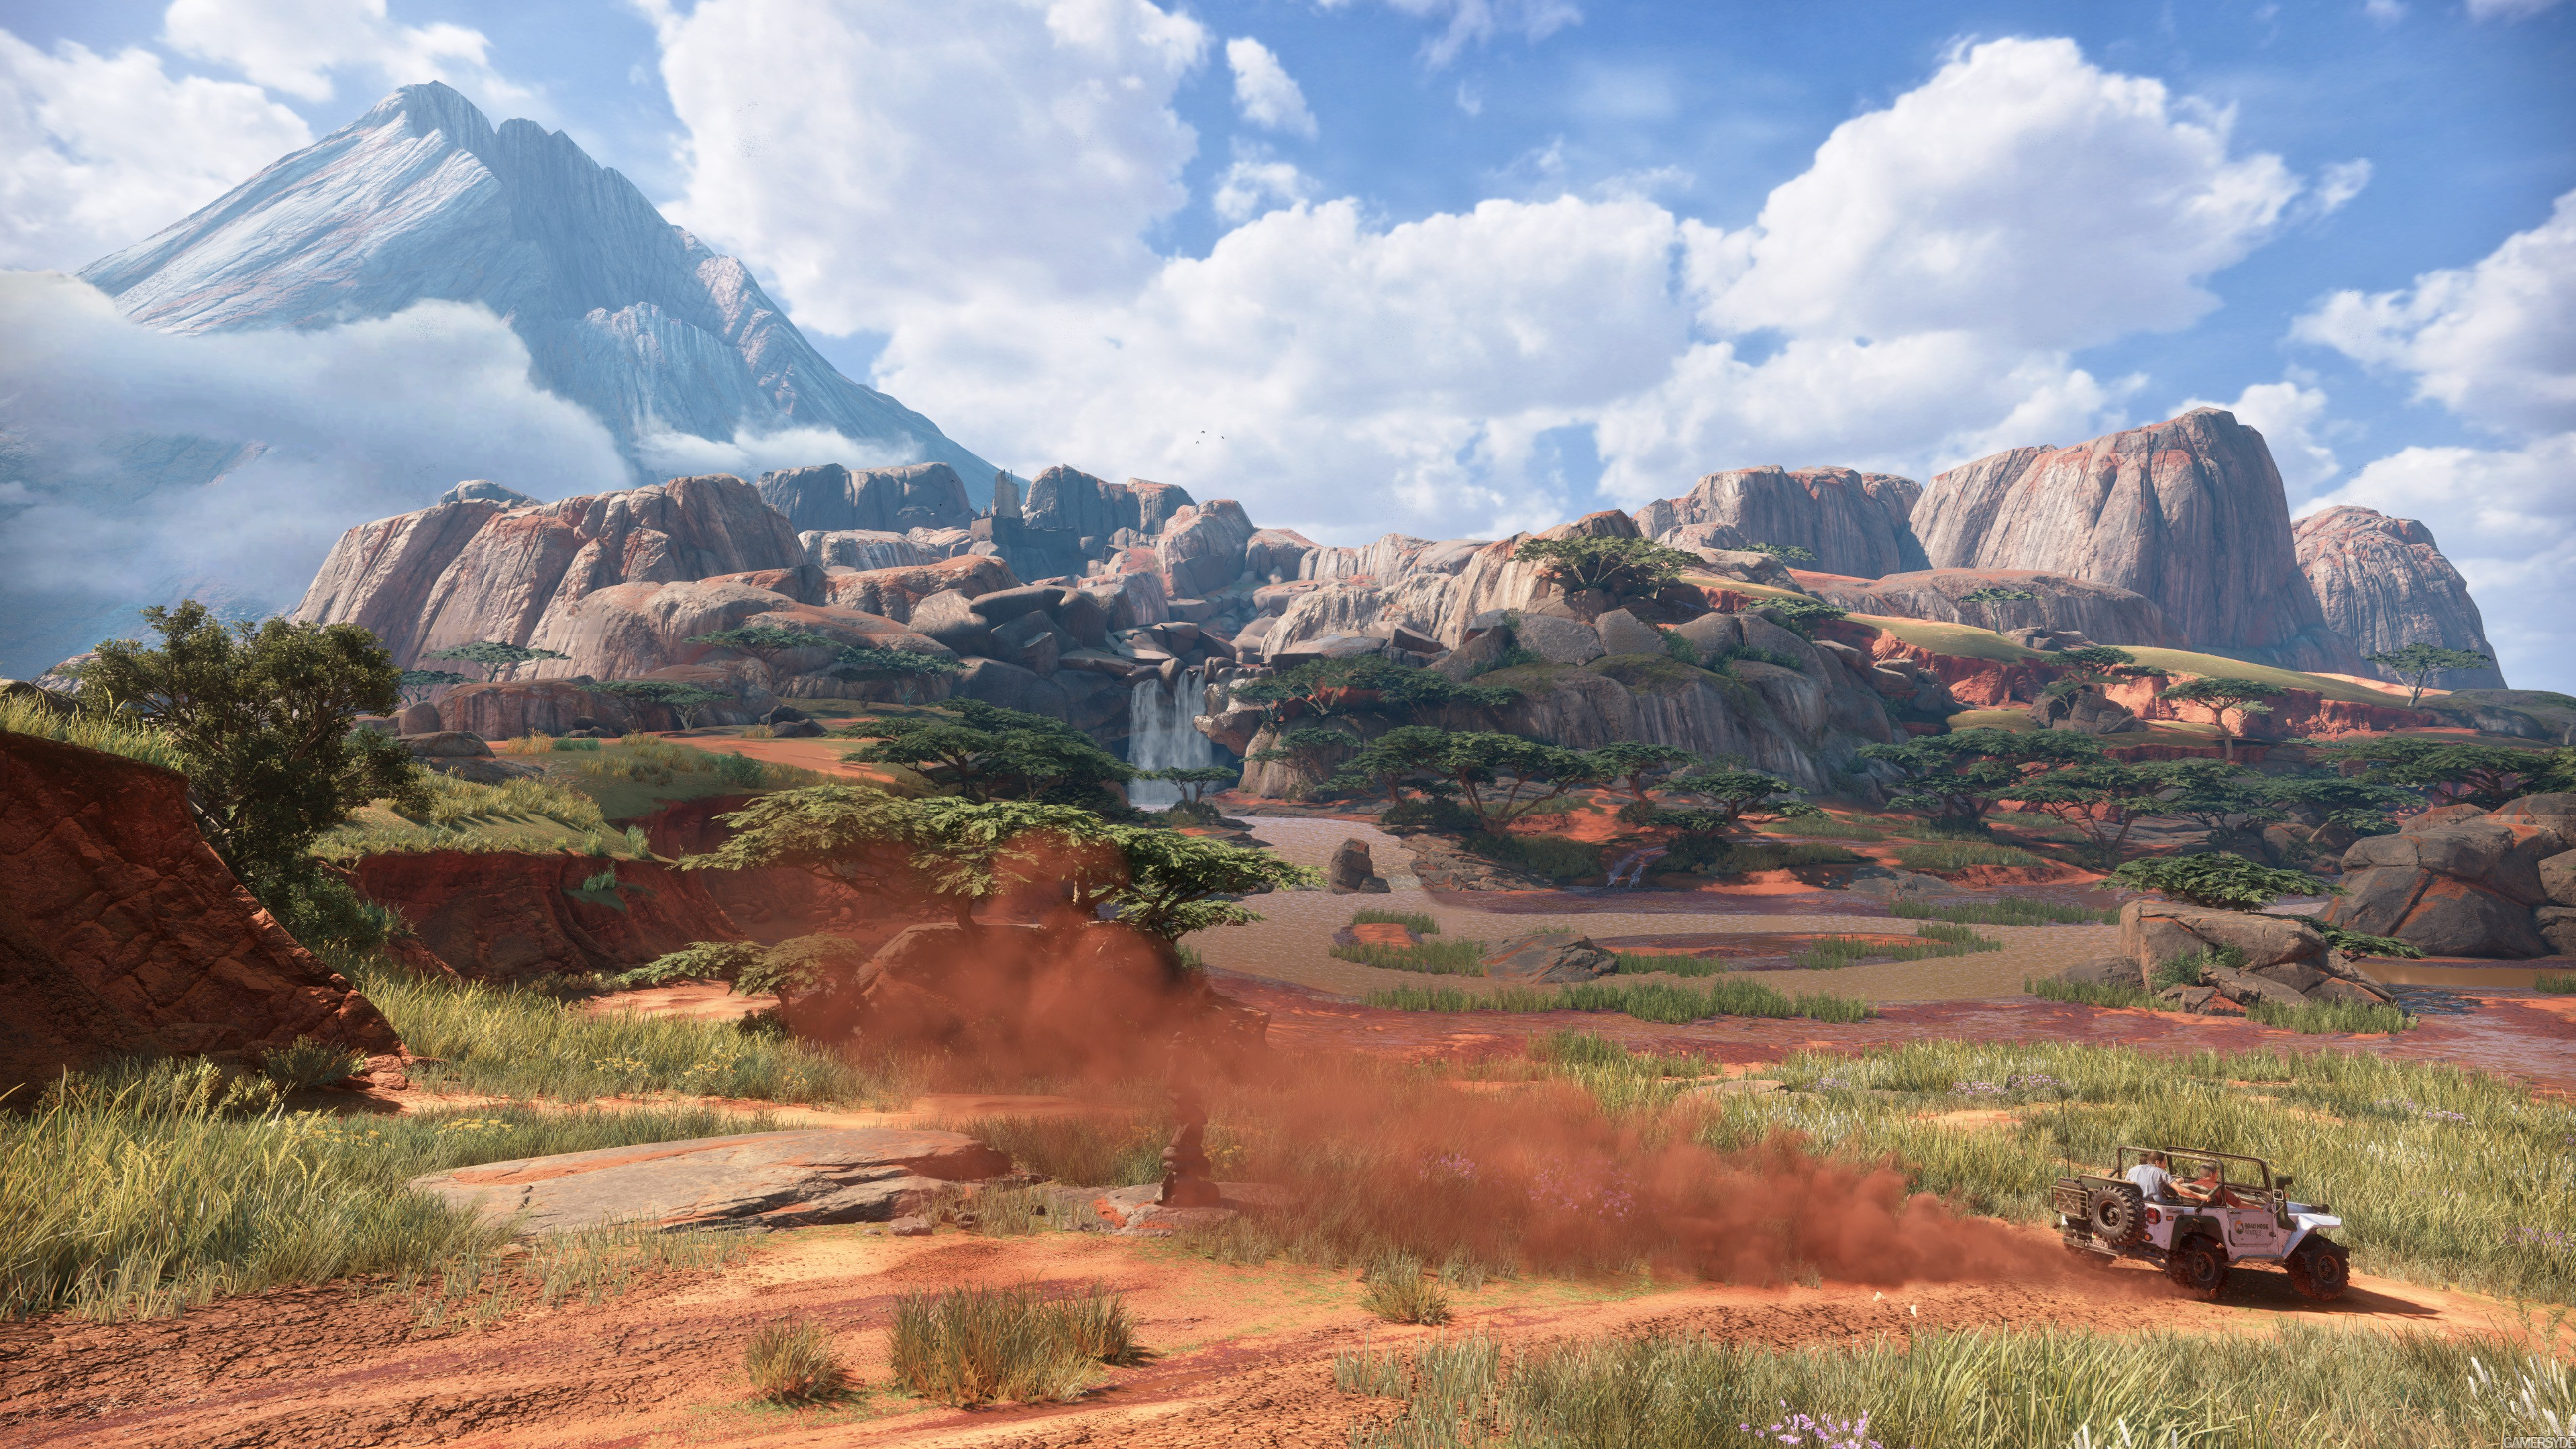 Wallpaper uncharted 4 a thief 39 s end best games of 2016 for Terengganu home wallpaper 2016